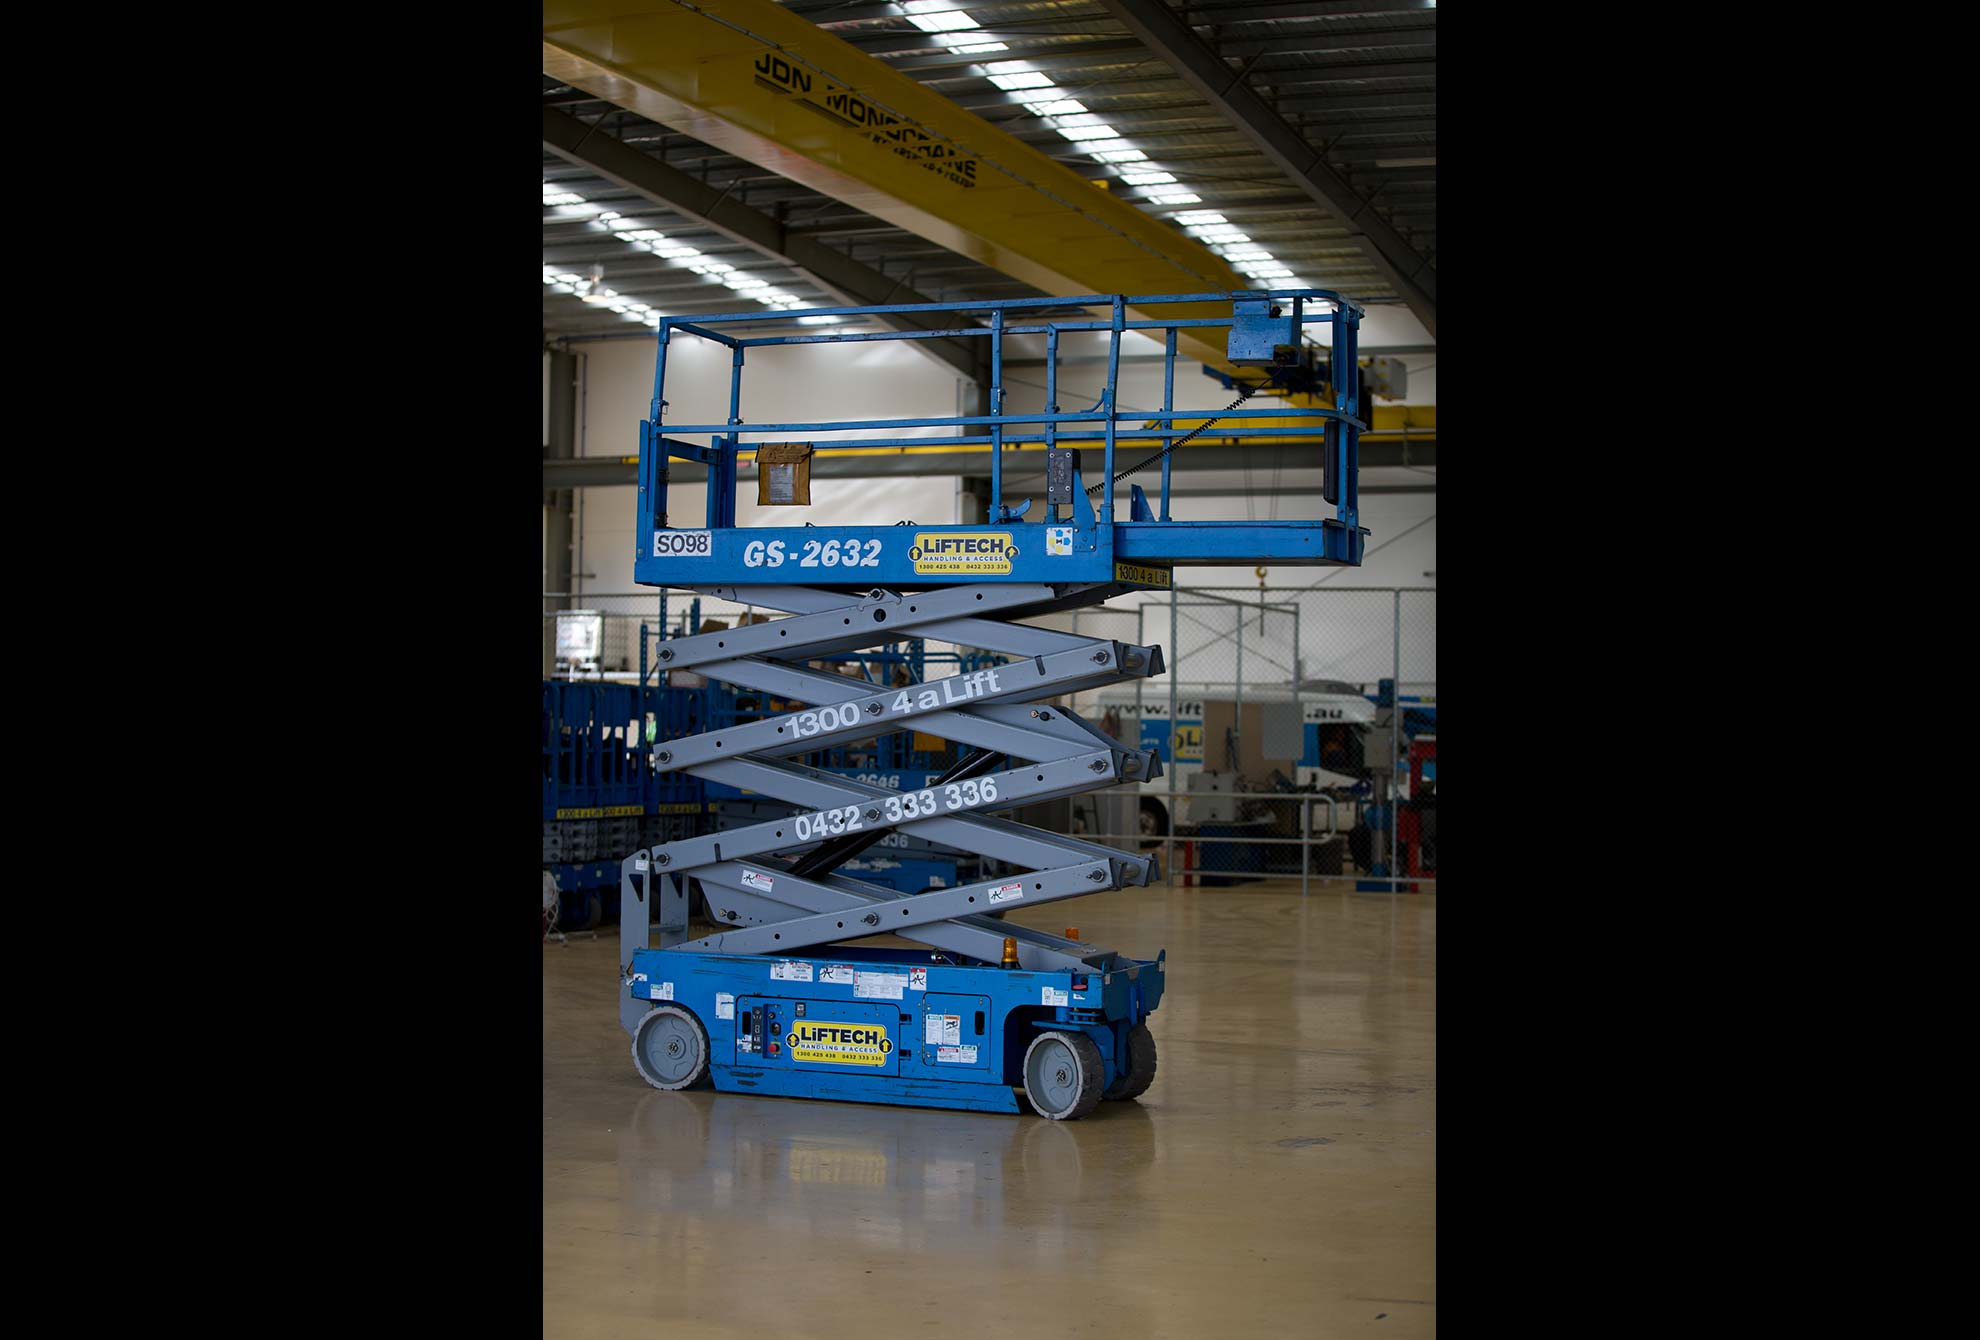 8m Narrow Scissor Lift for Rent in Melbourne